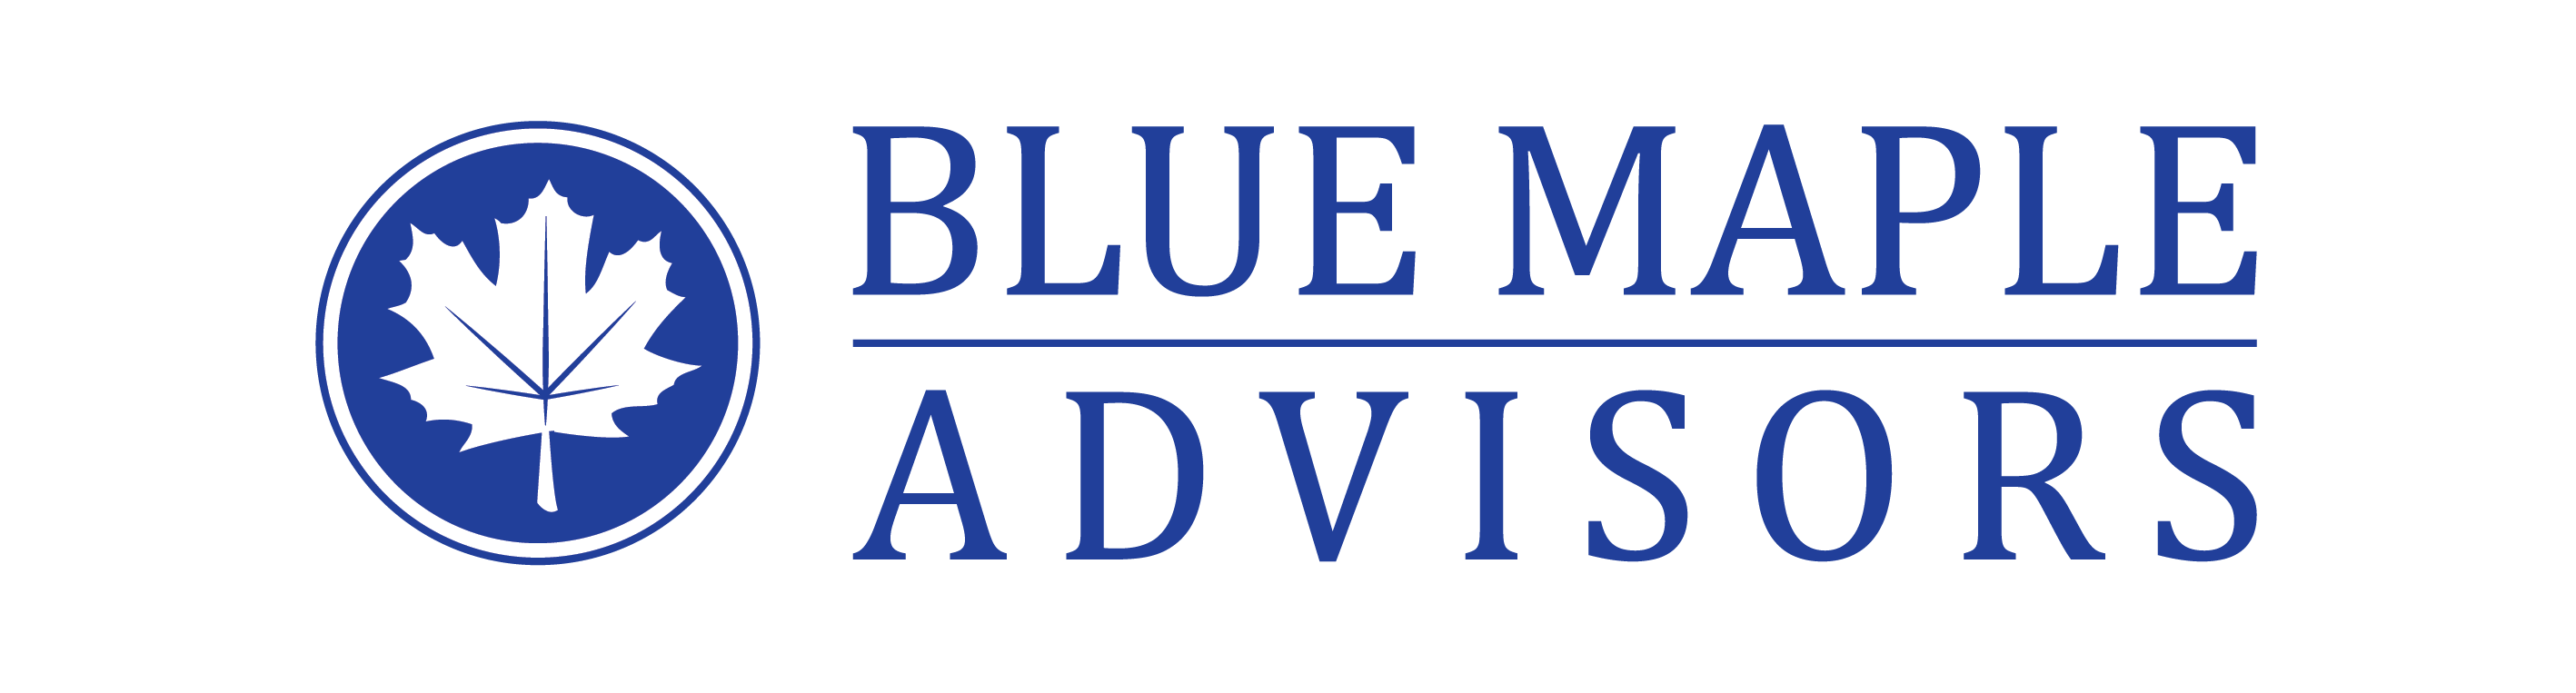 Blue Maple Advisors